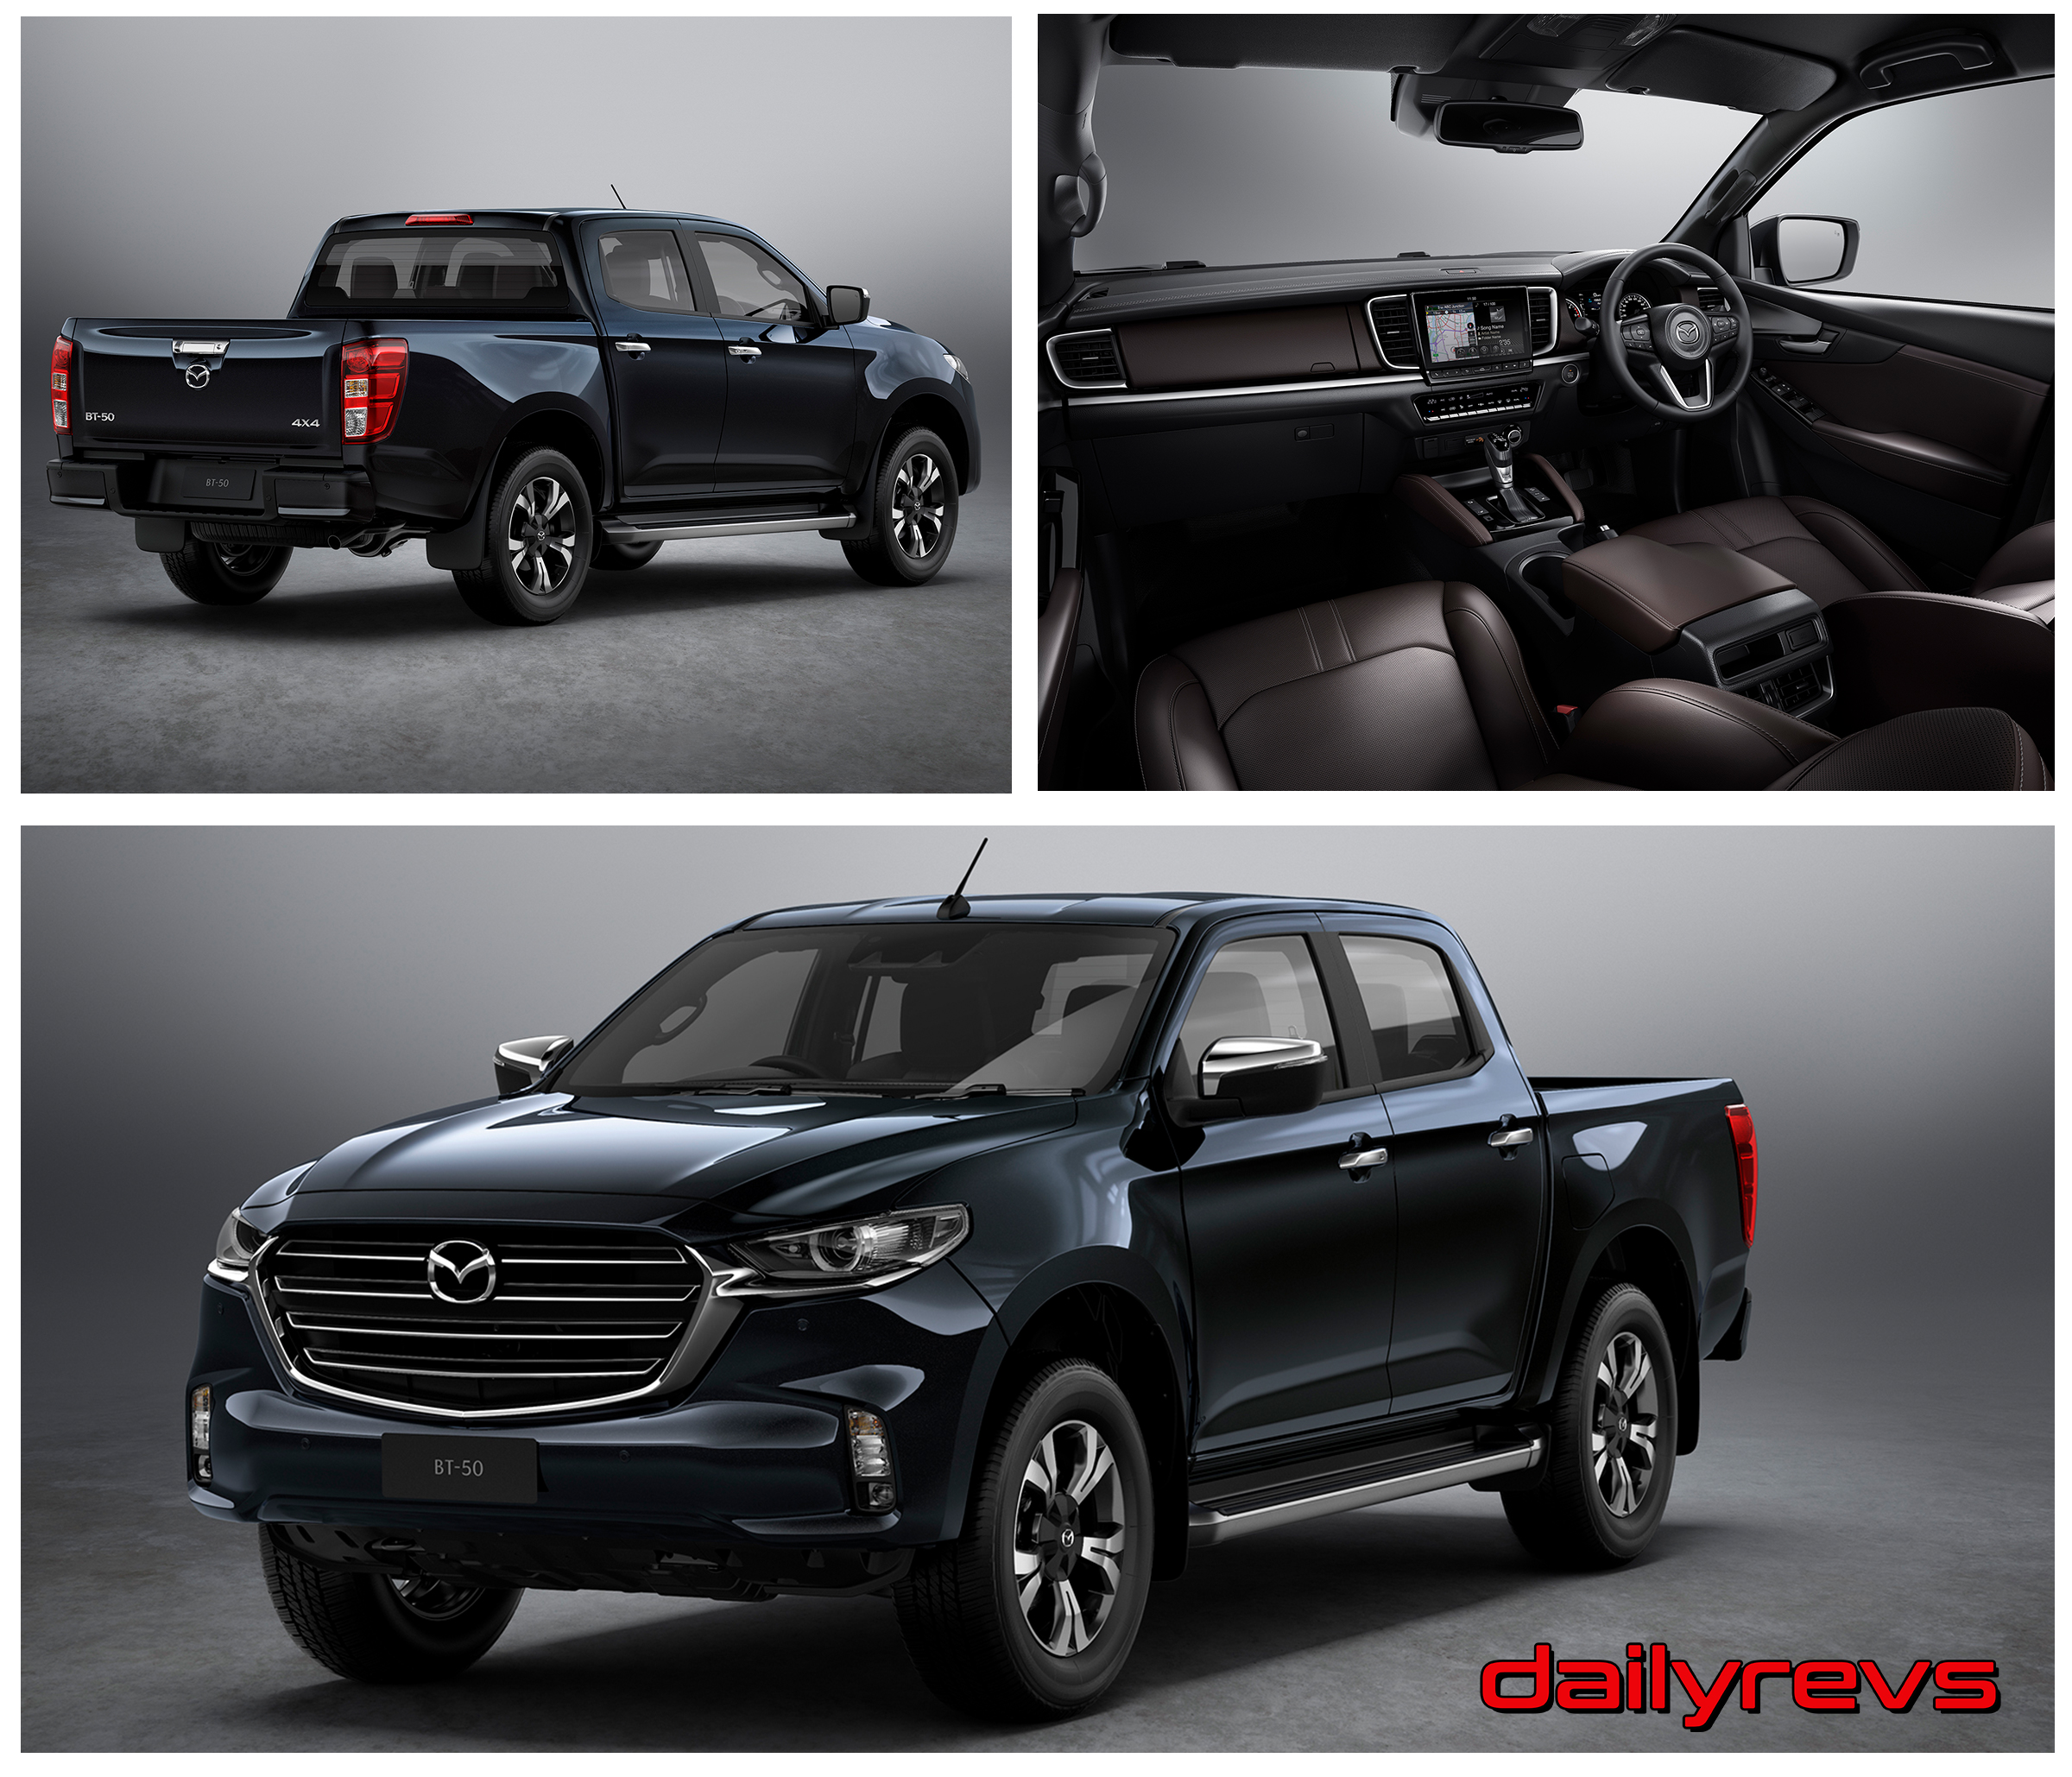 2021 mazda bt50  dailyrevs